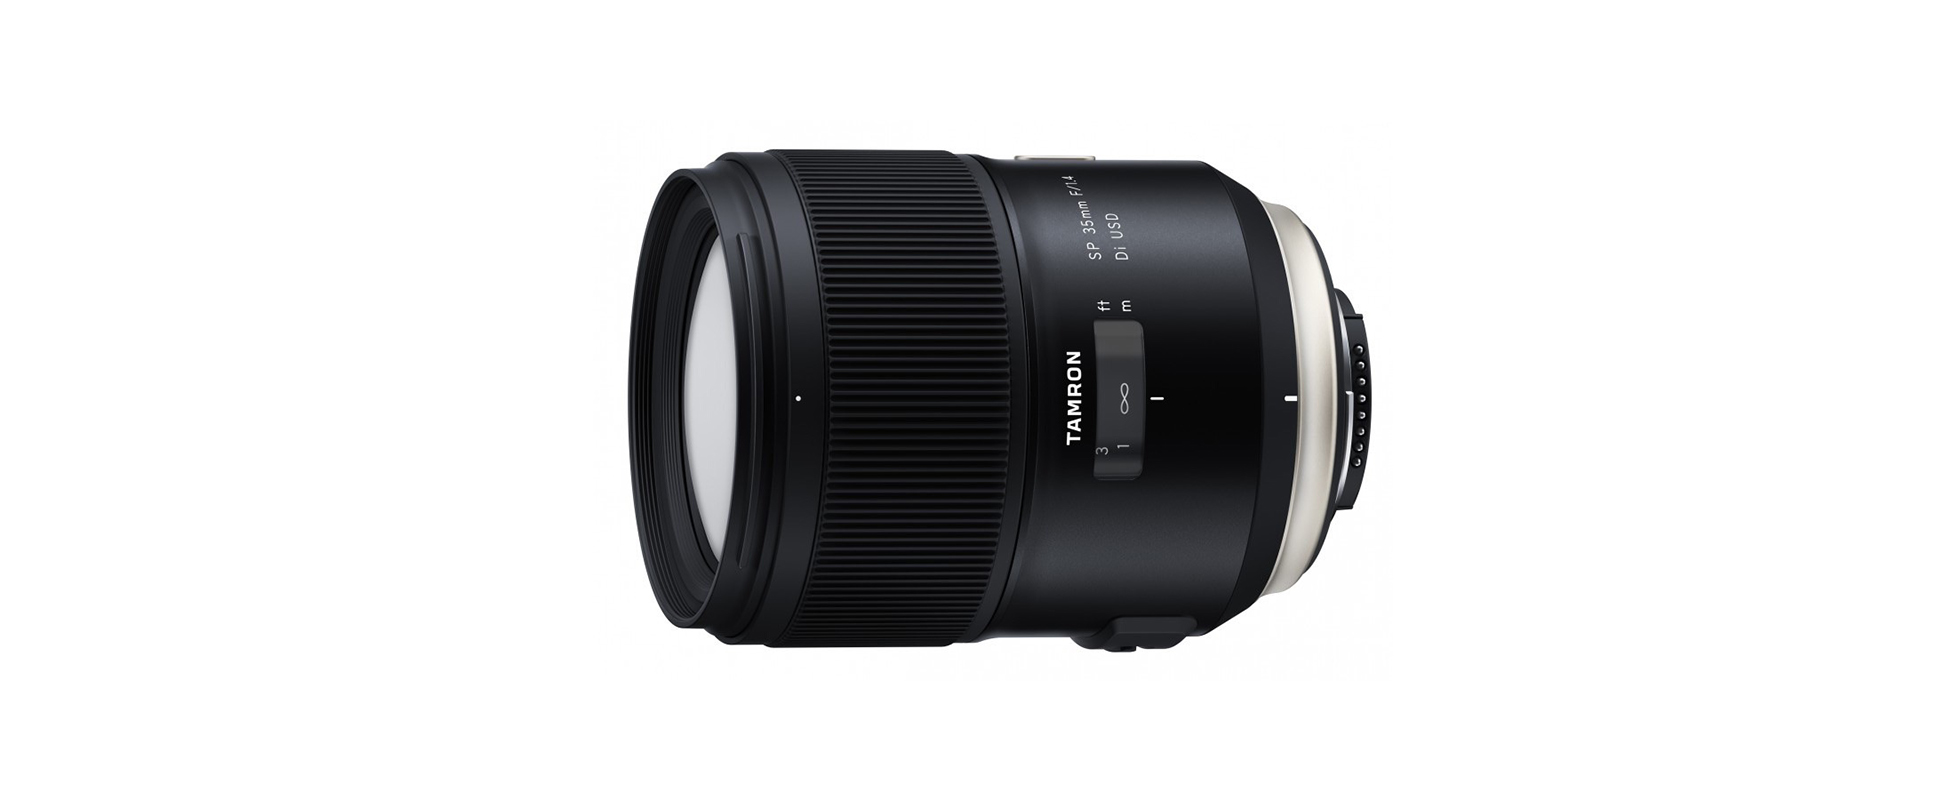 Tamron SP 1,4/35 mm Di USD